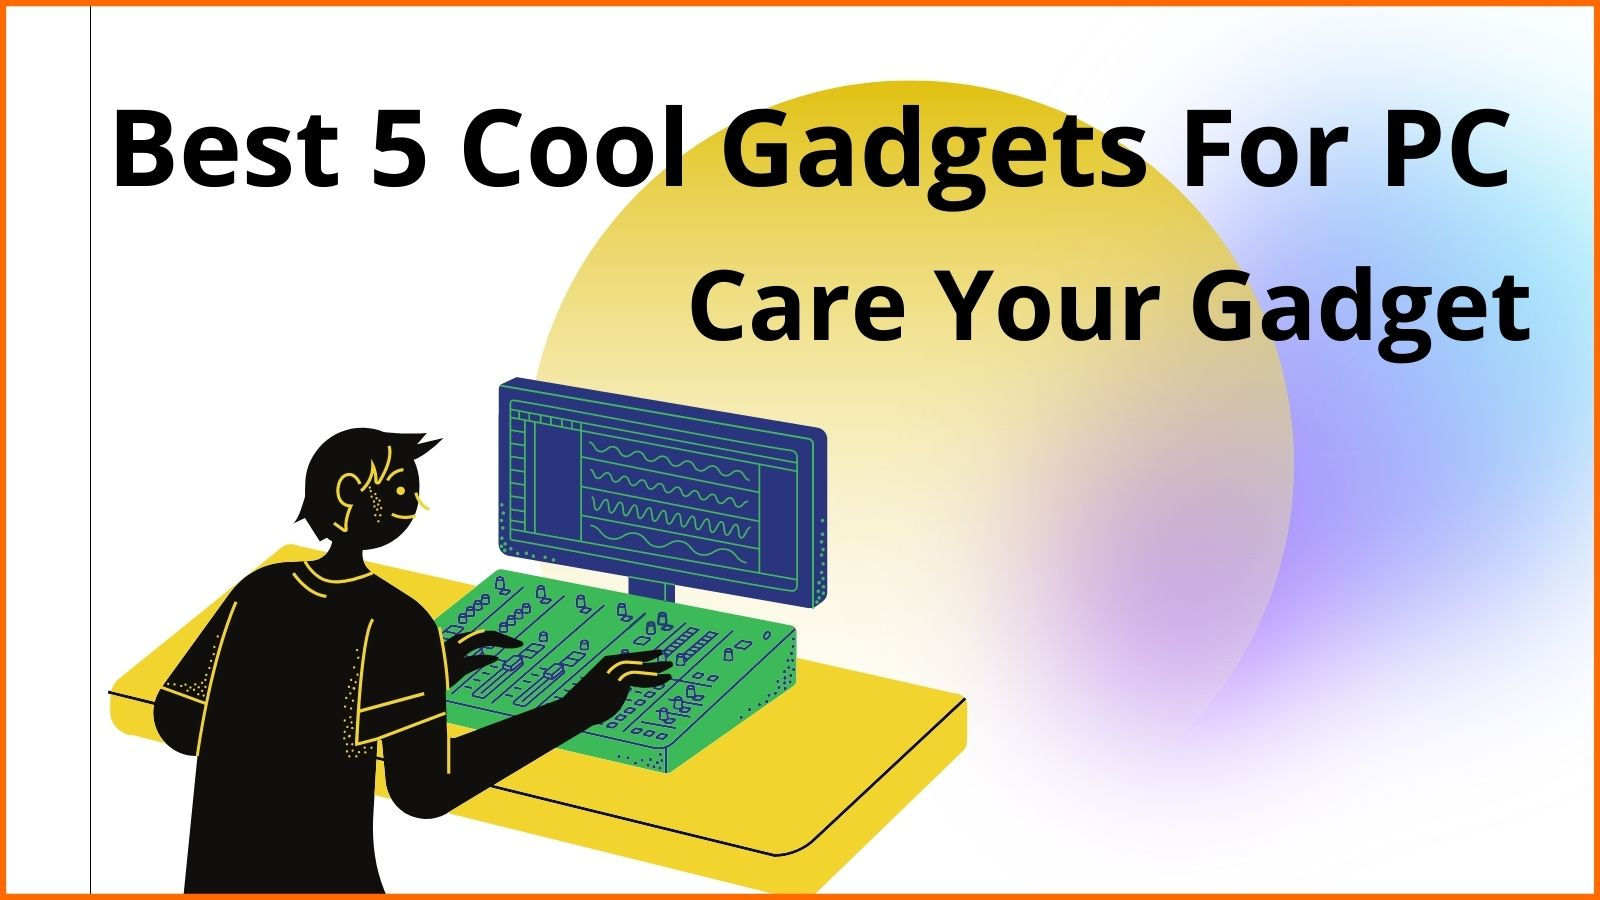 Cool Gadgets For PC users